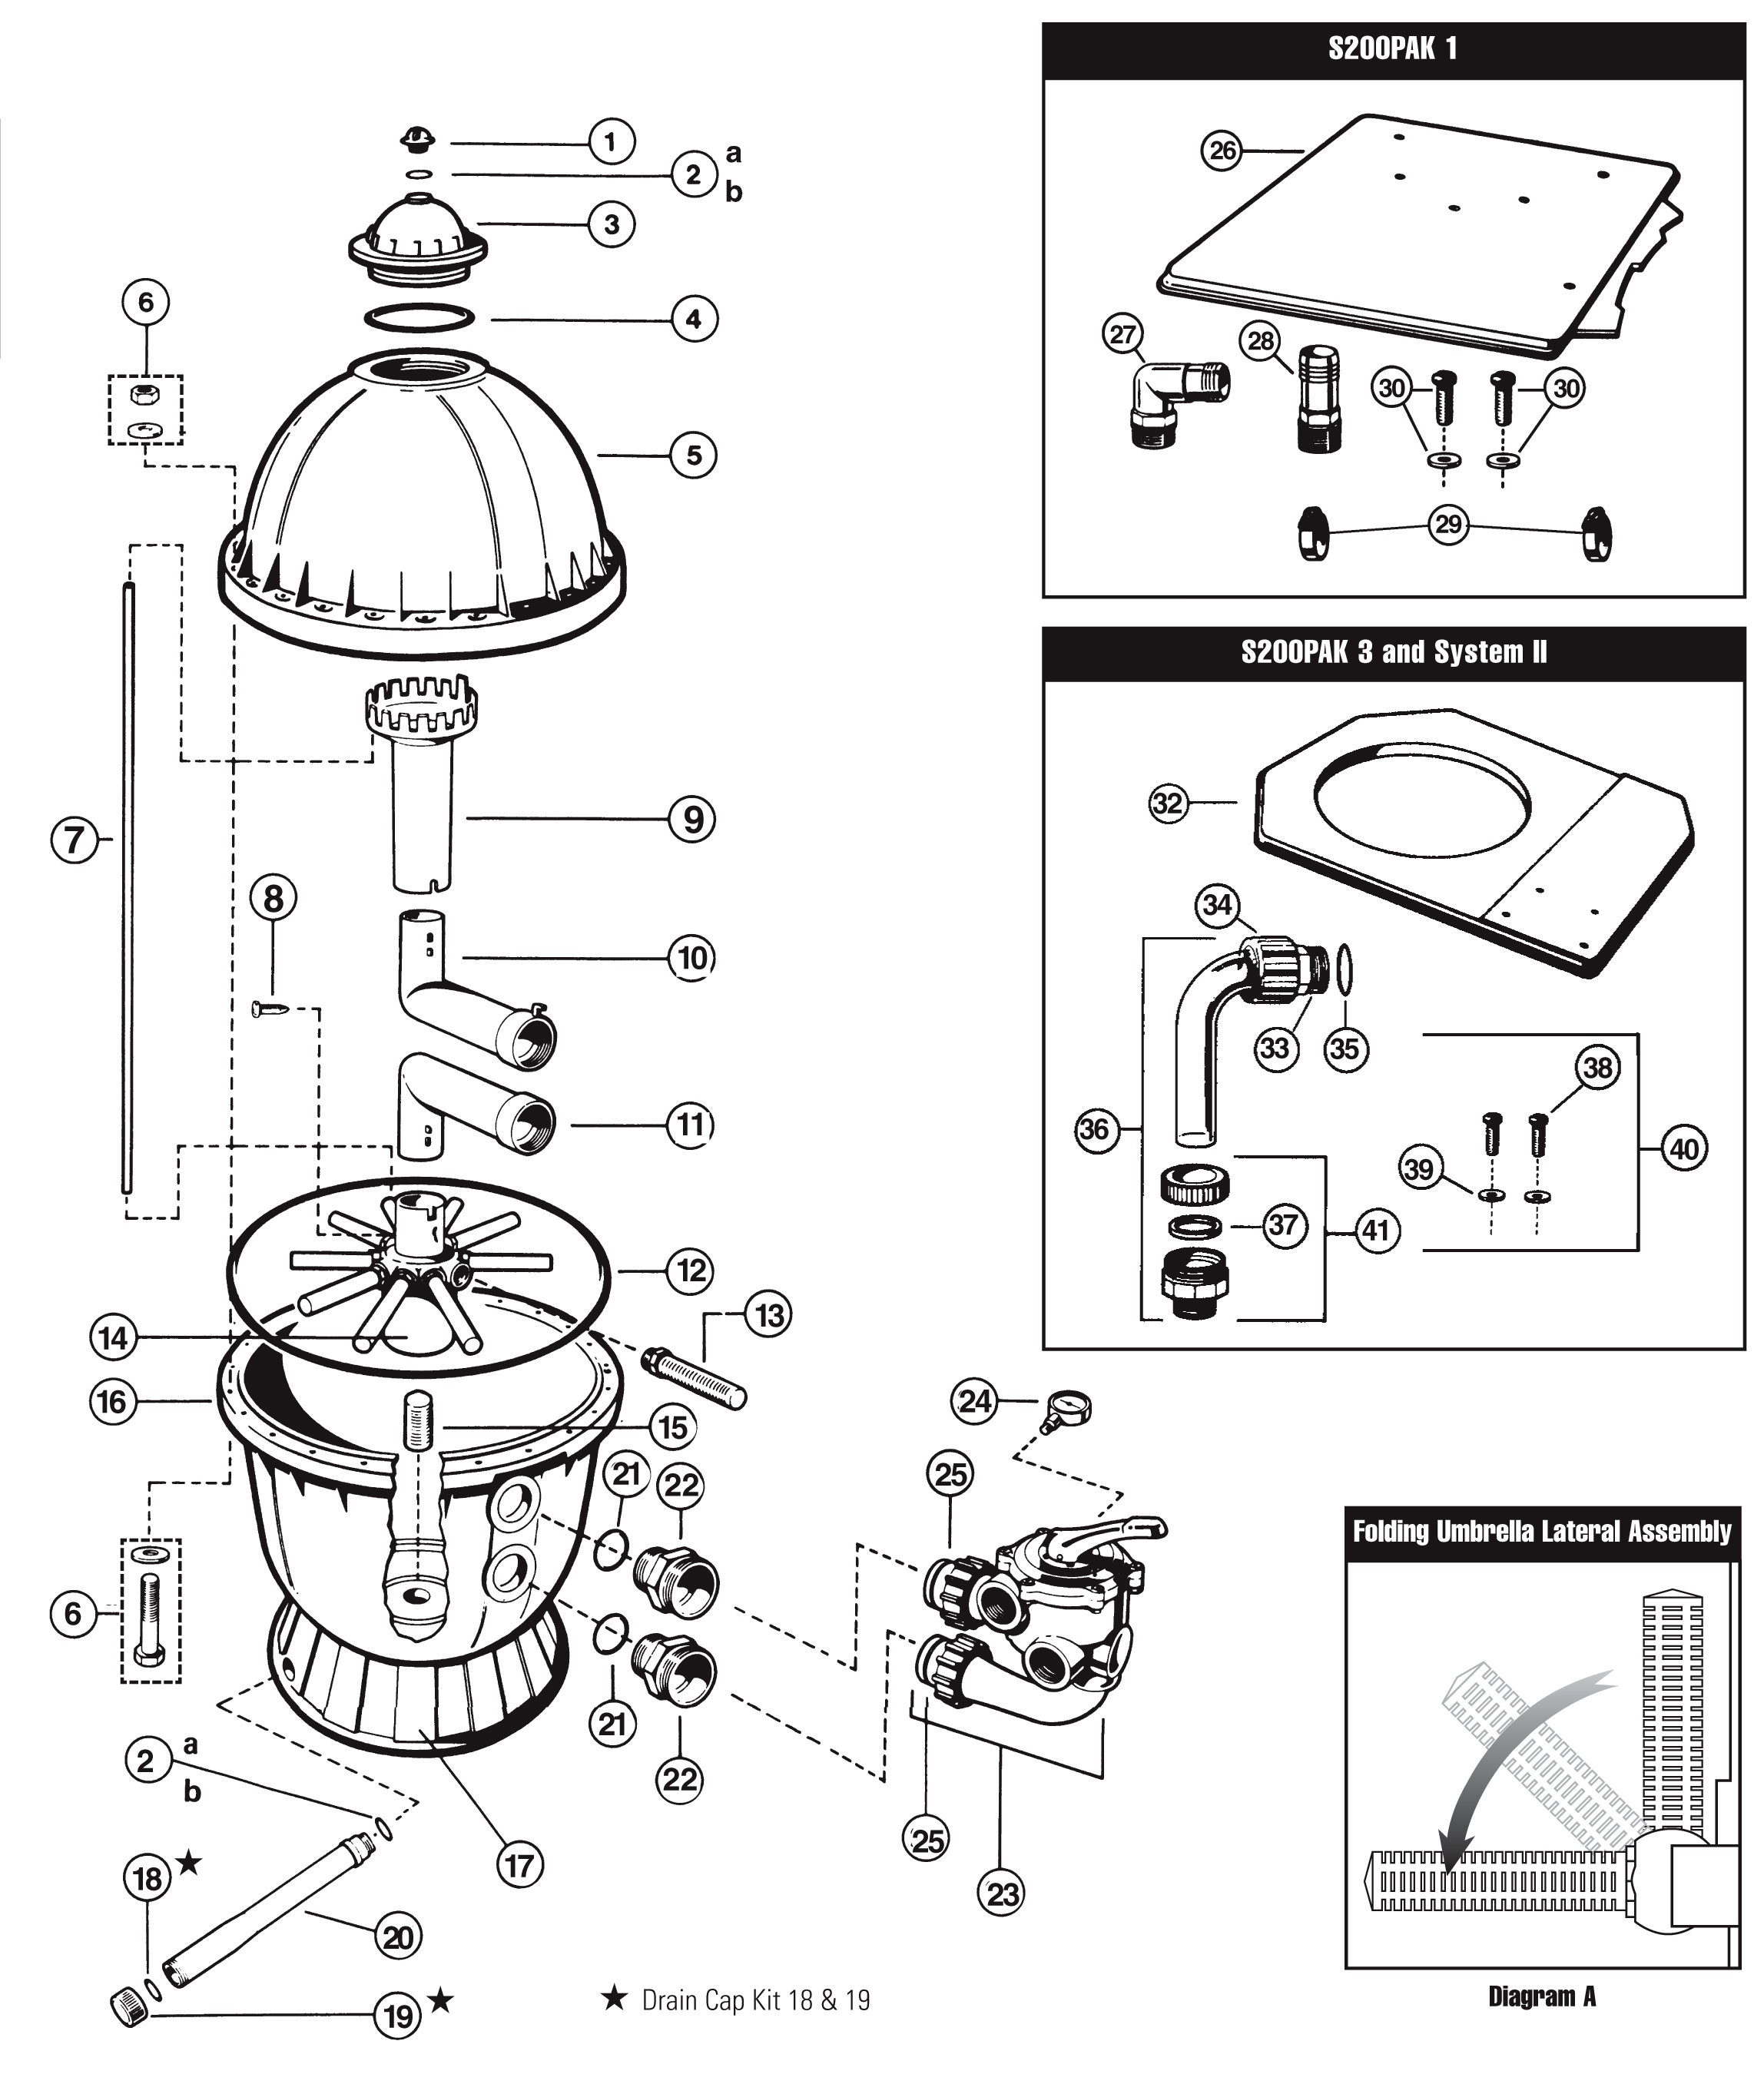 Hayward S140T S144T Diagram hayward sand filter parts  at panicattacktreatment.co